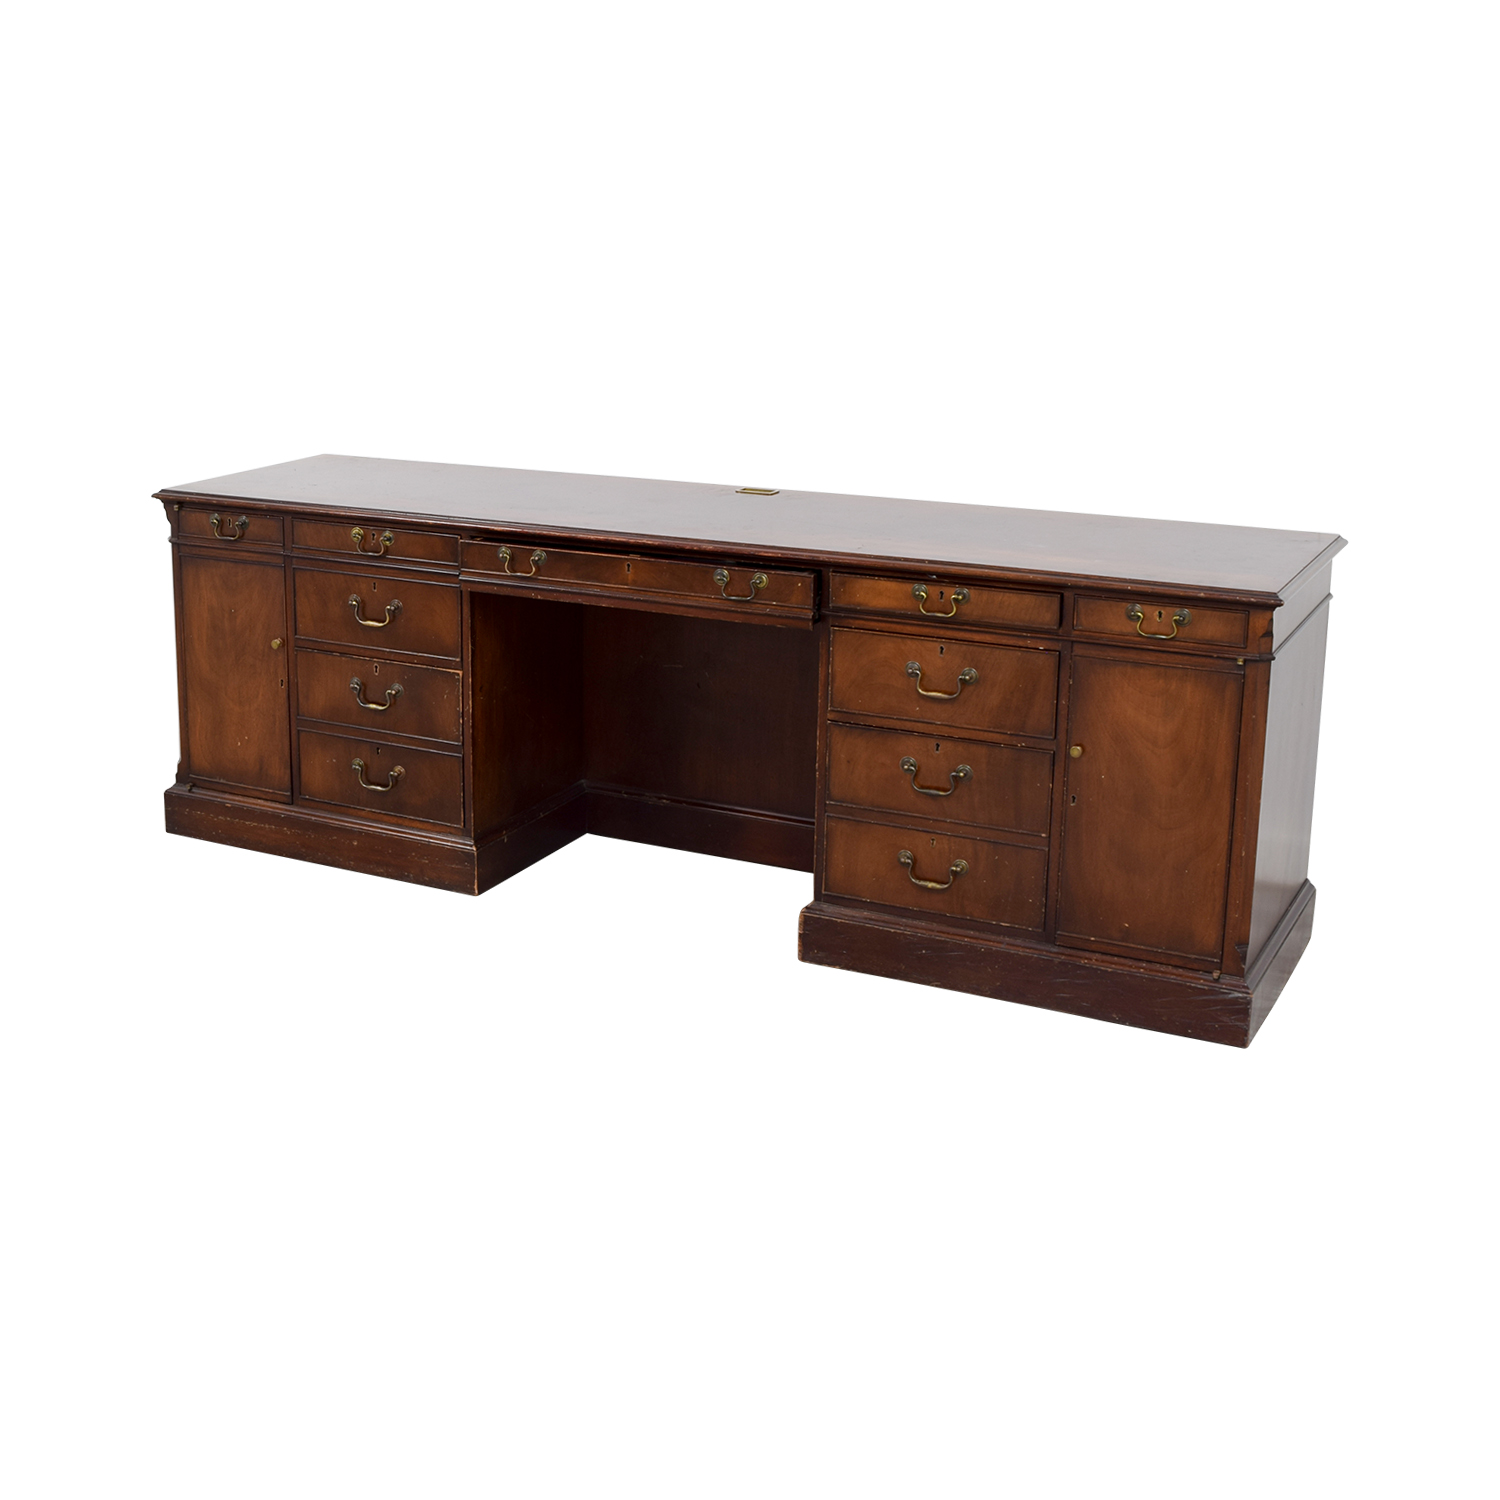 Smith & Watson Smith & Watson Wood Credenza Desk for sale